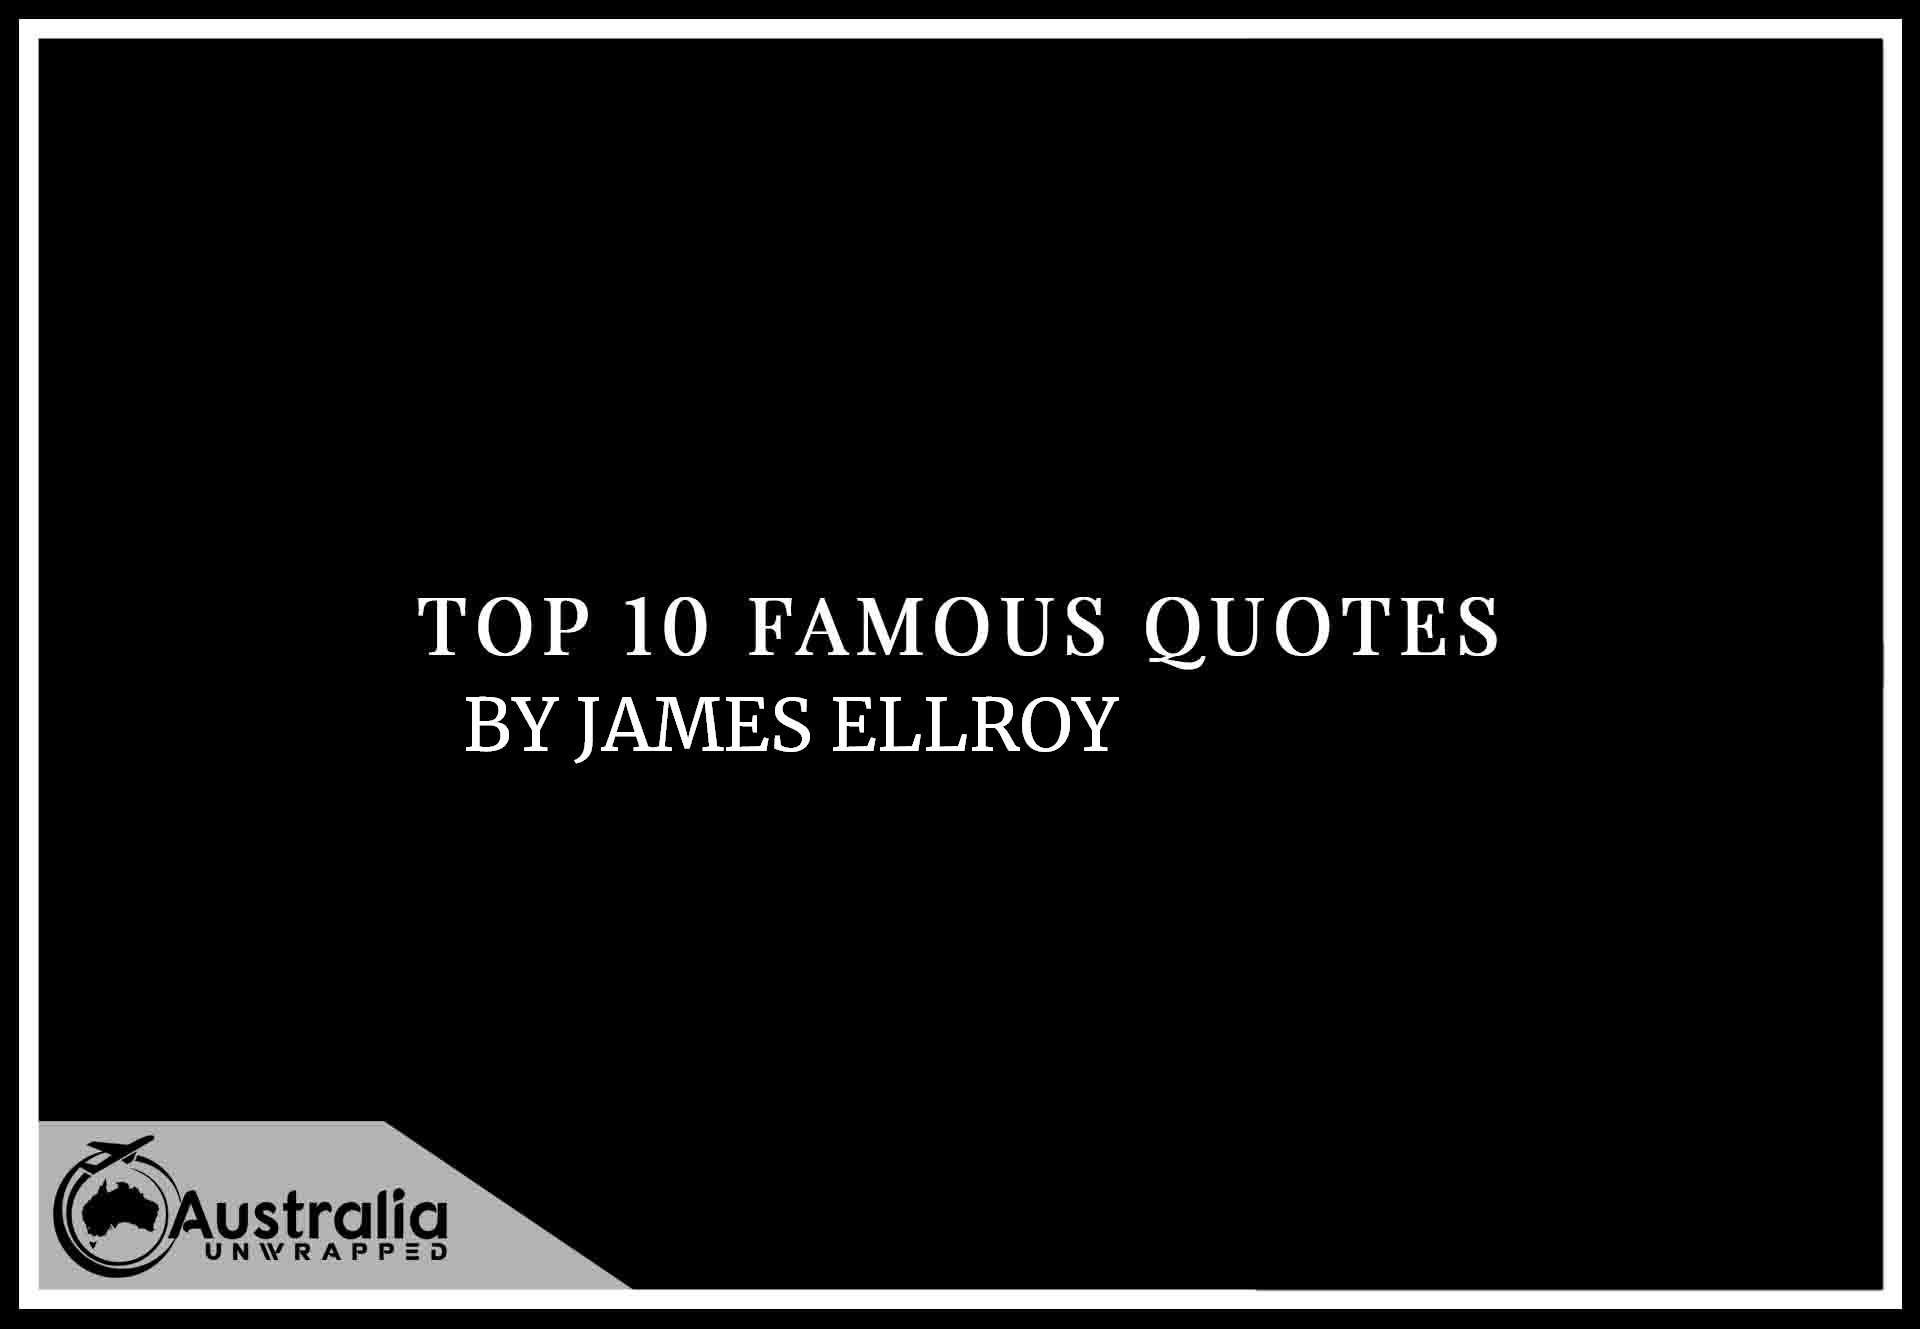 Top 10 Famous Quotes by Author James Ellroy